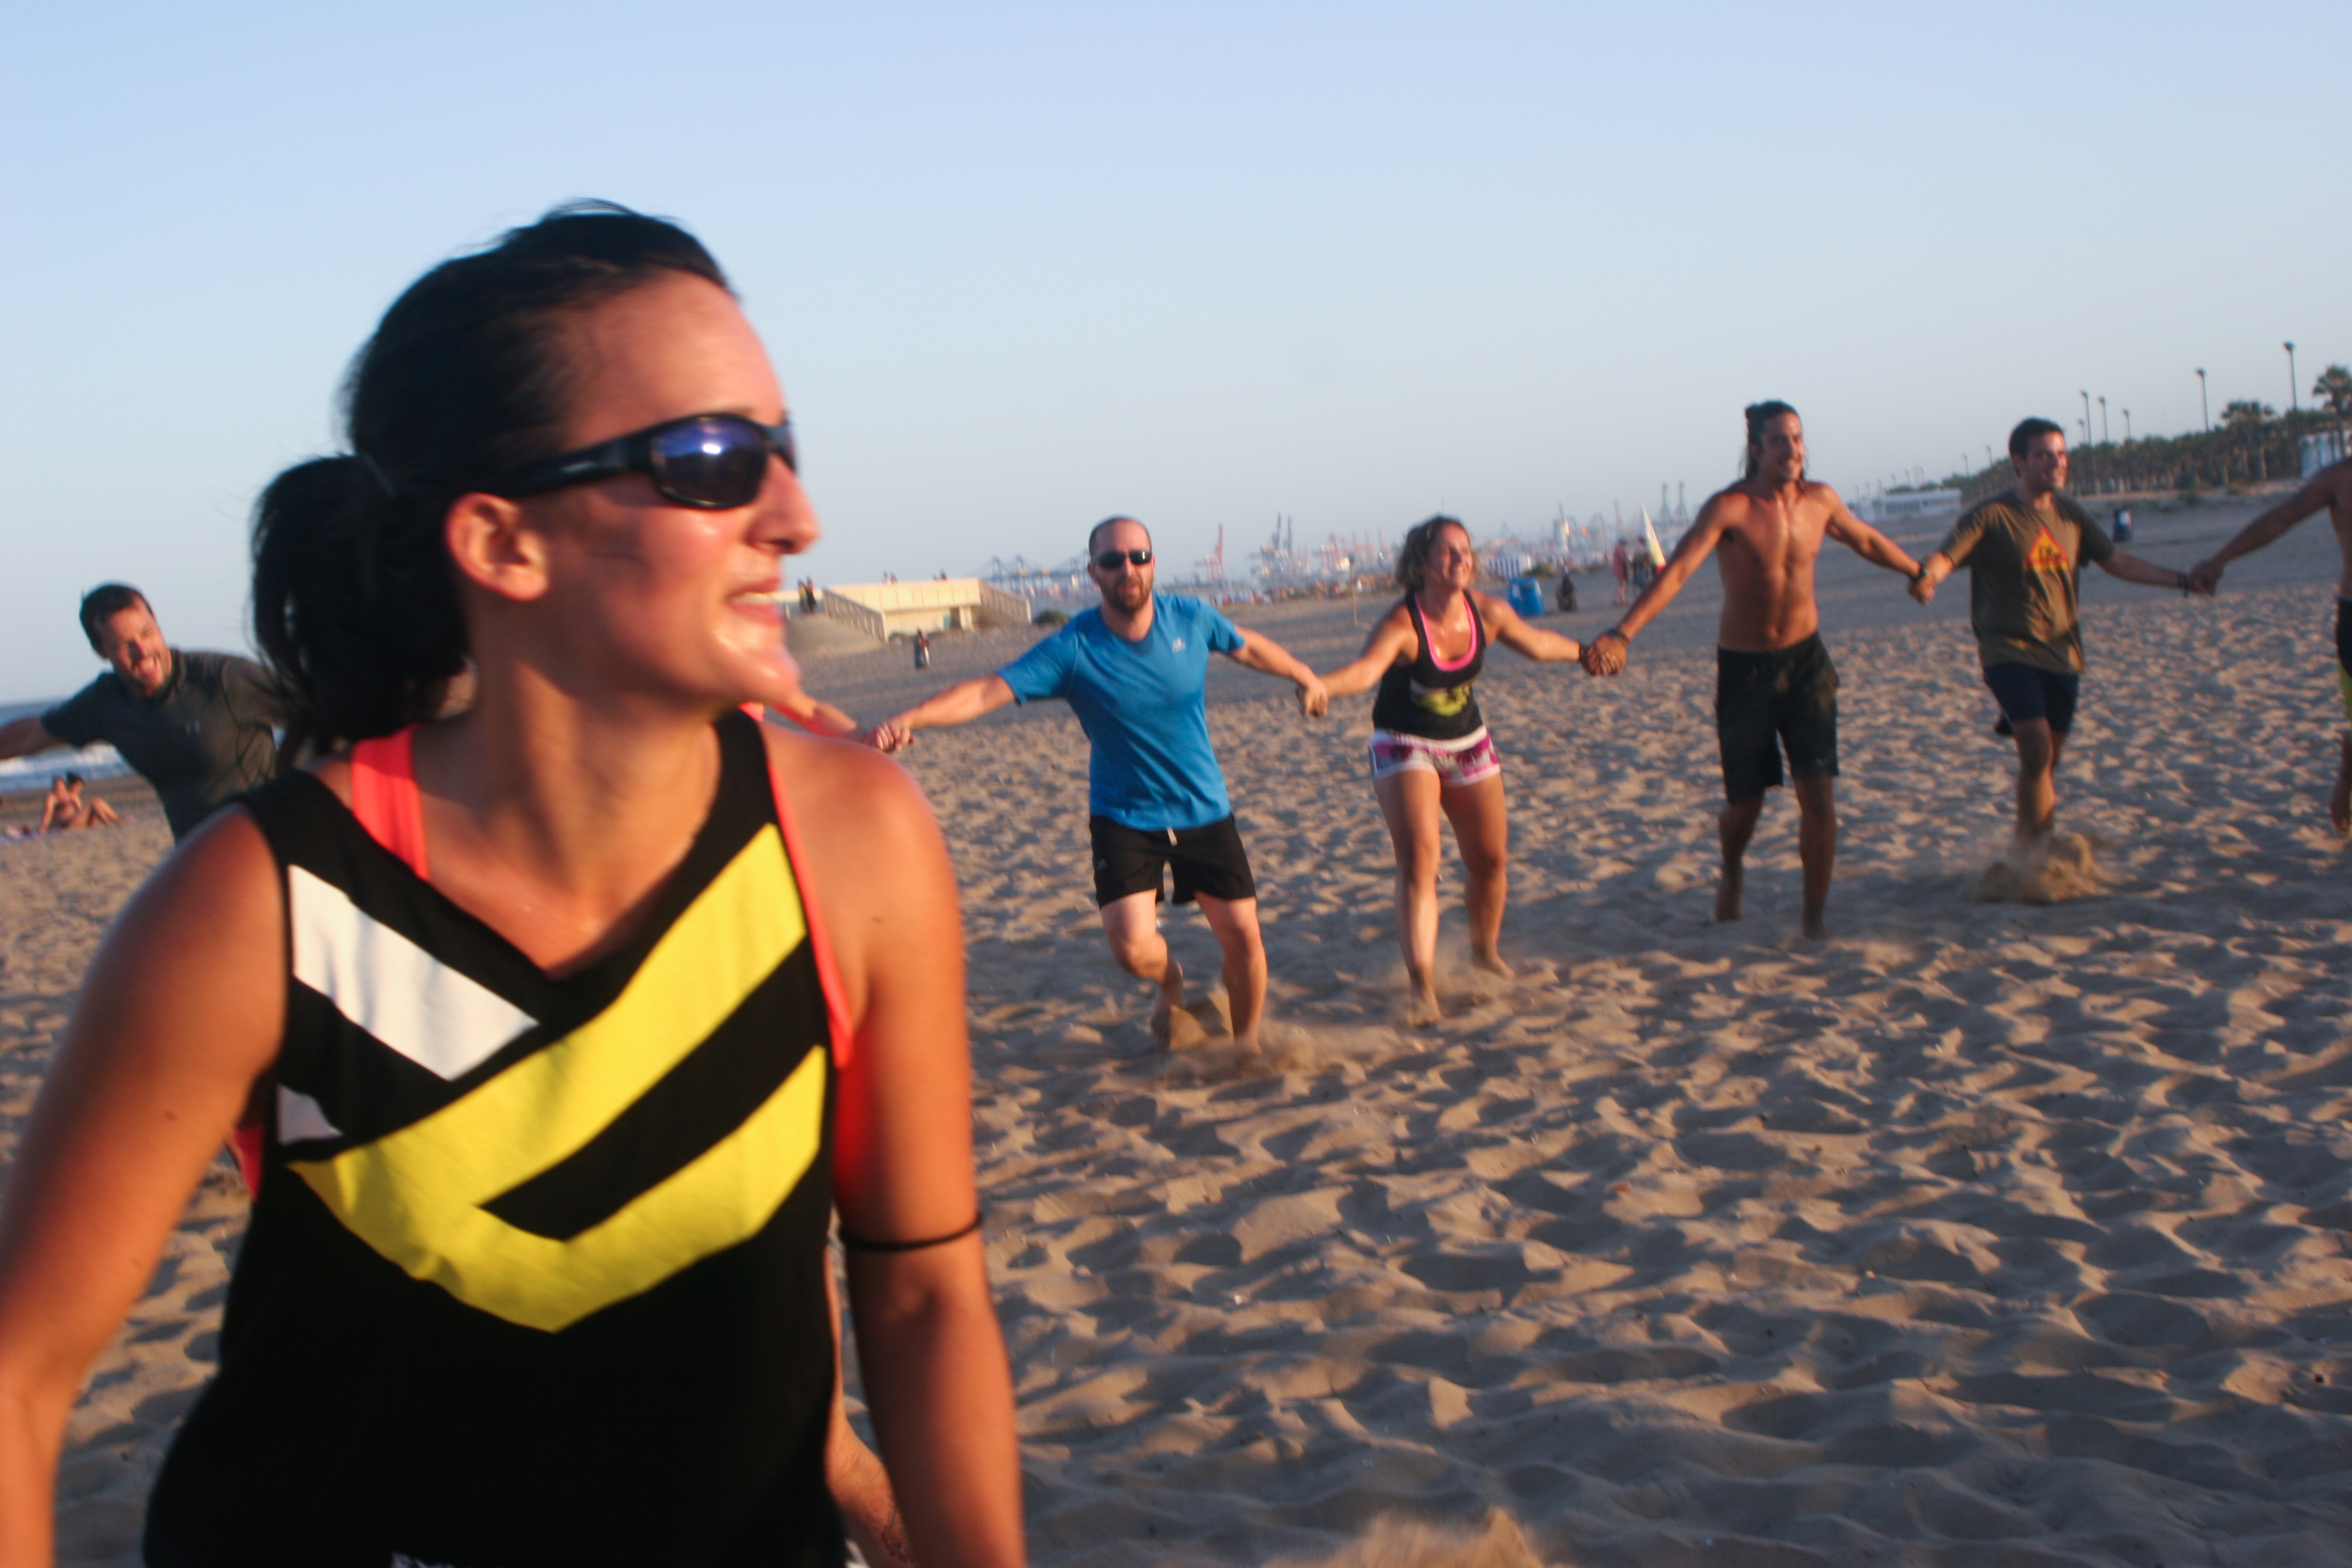 Full_CrossFit_Beach_Wod_V2_2015-30.jpg